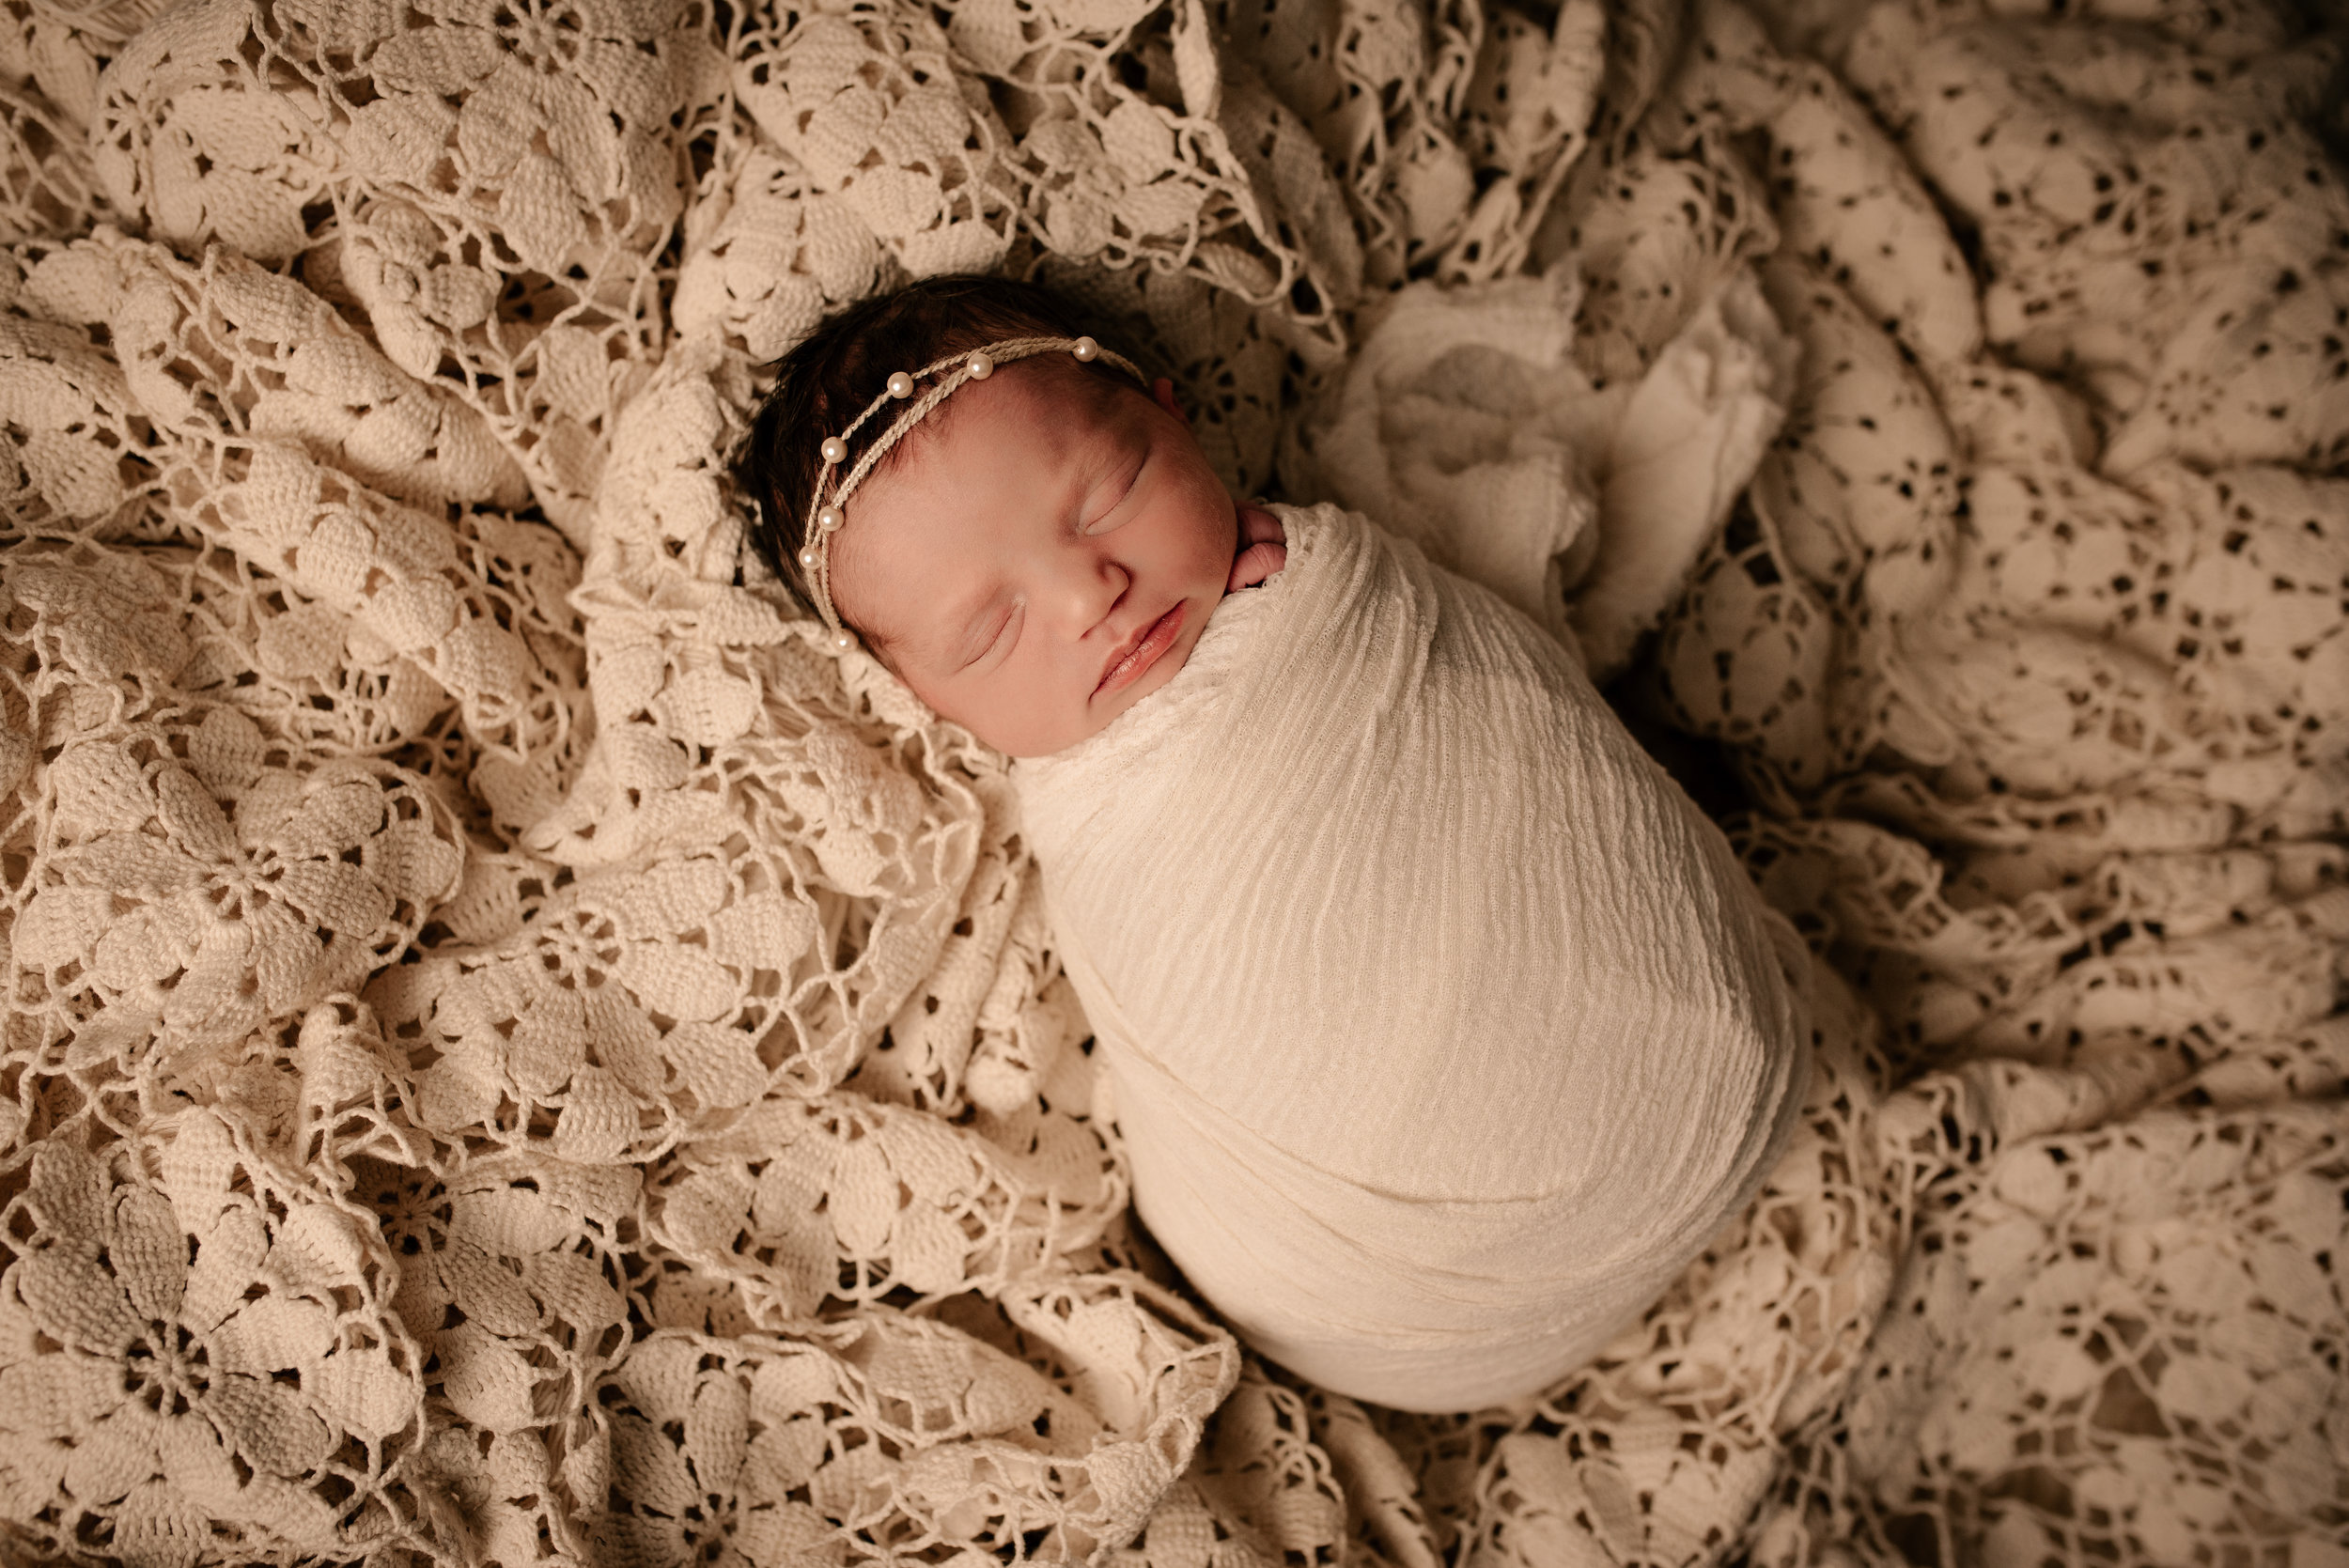 Newborn_Margot_8Days-19.jpg